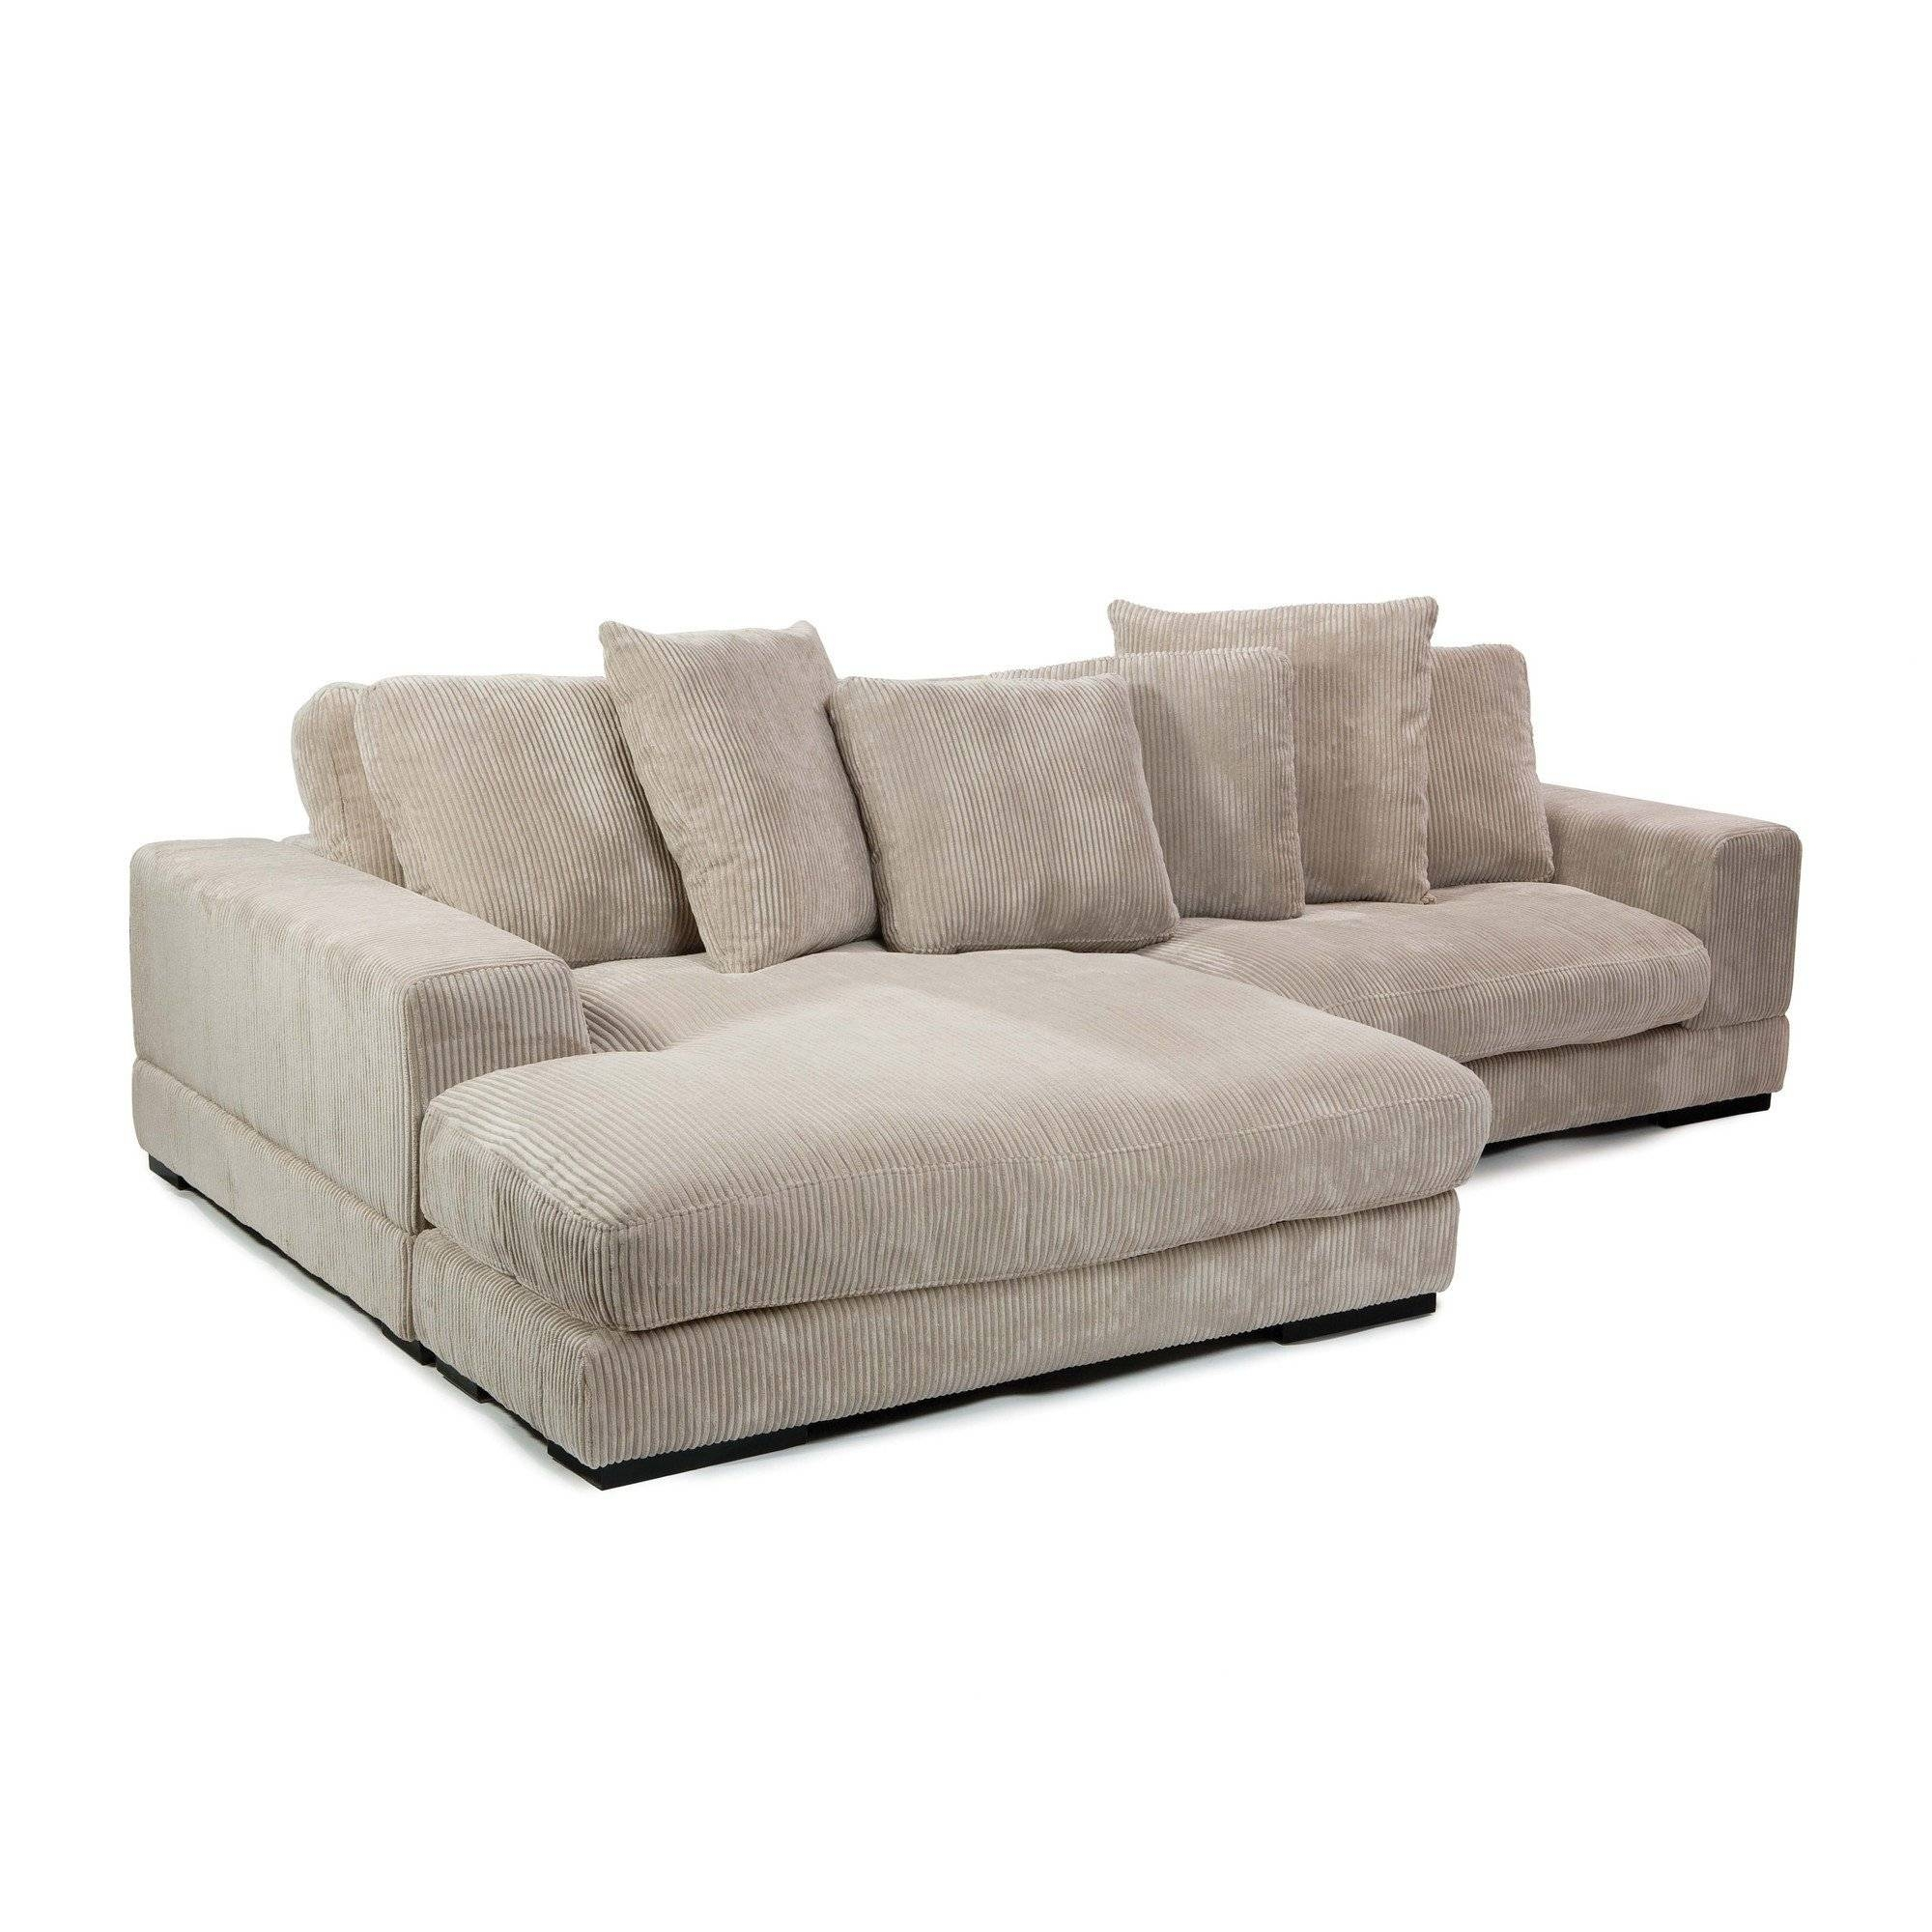 Decor: Artificial Classic Corduroy Sectional Sofa For Unique within Leather Modular Sectional Sofas (Image 3 of 30)